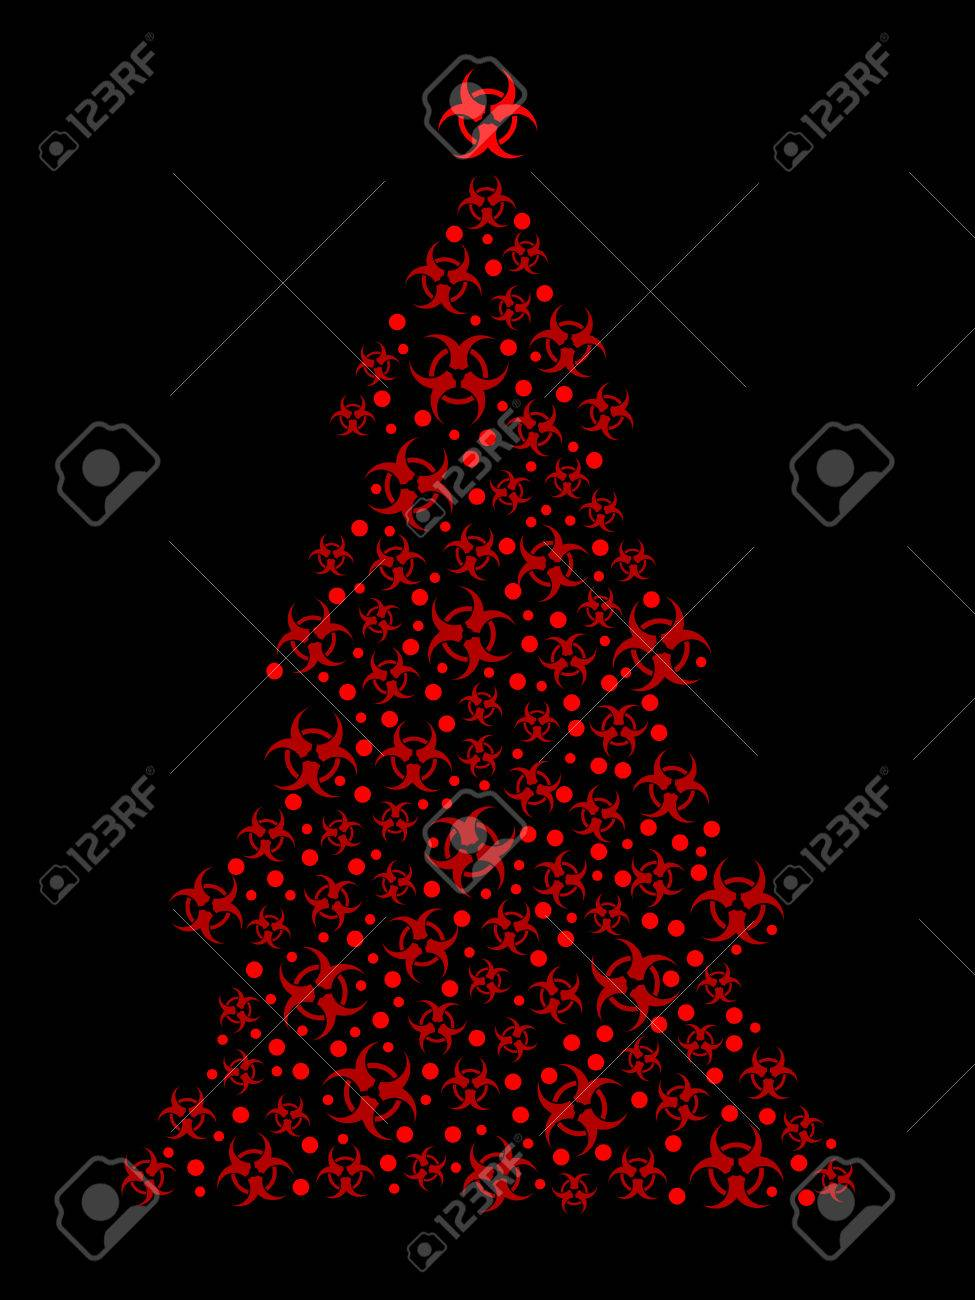 Biohazard Christmas tree Stock Vector - 8380335